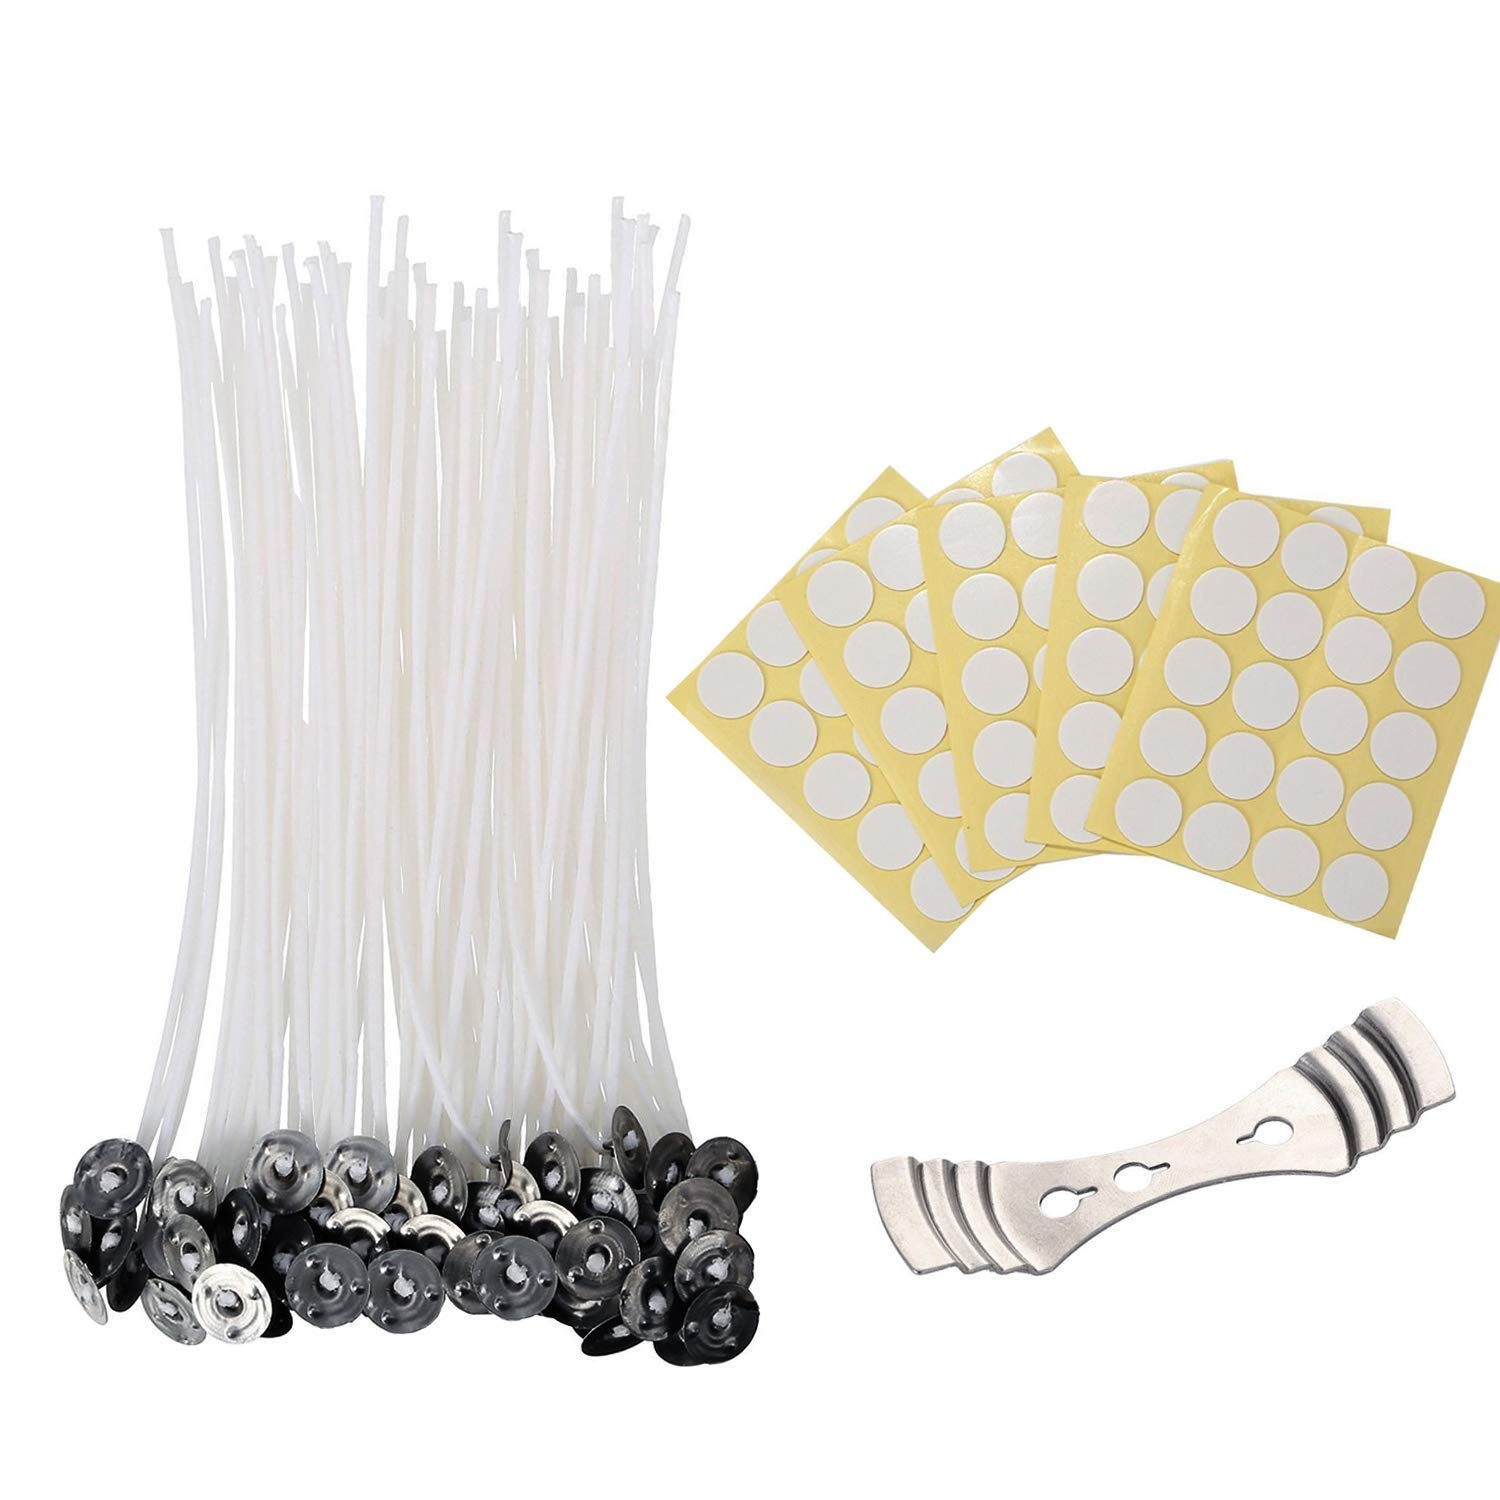 Candle Wicks, 100 Pieces Candle Wicks with 100 Pieces Dots Wick Stickers and 1 Piece Wick Holder, Candle Making Kit (6 inch) Vonker